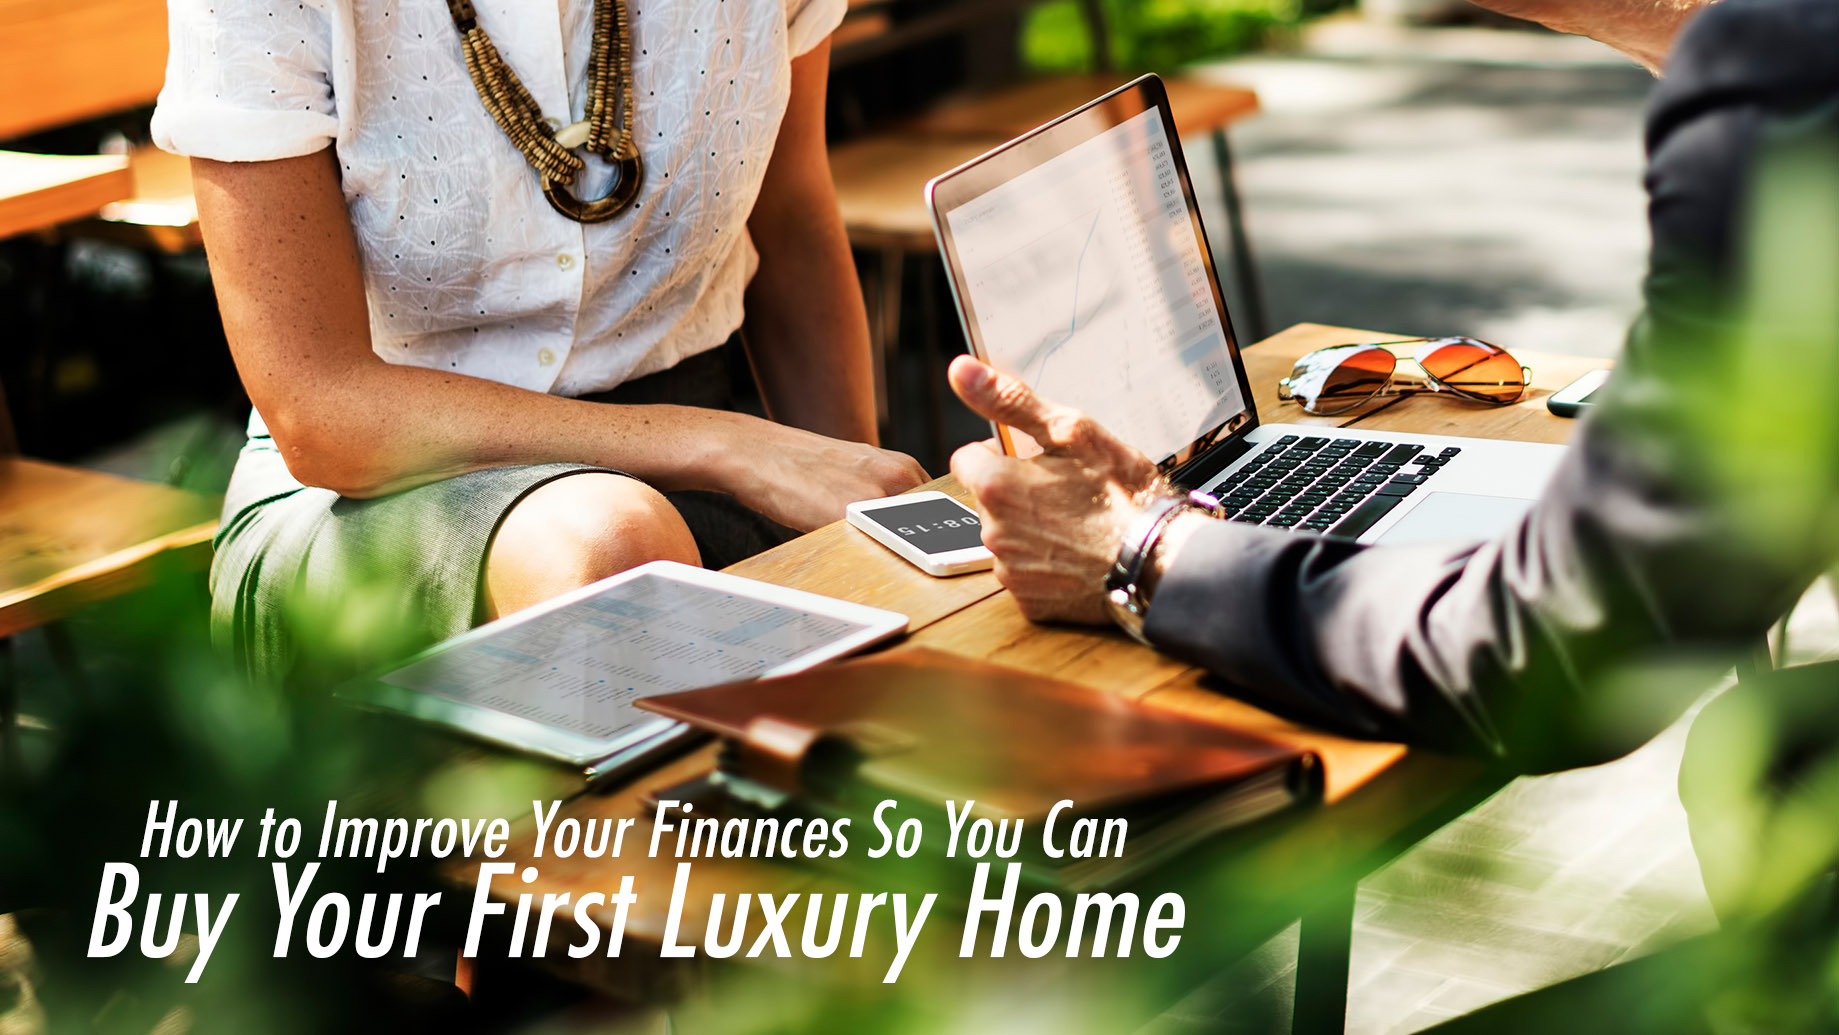 How to Improve Your Finances So You Can Buy Your First Luxury Home